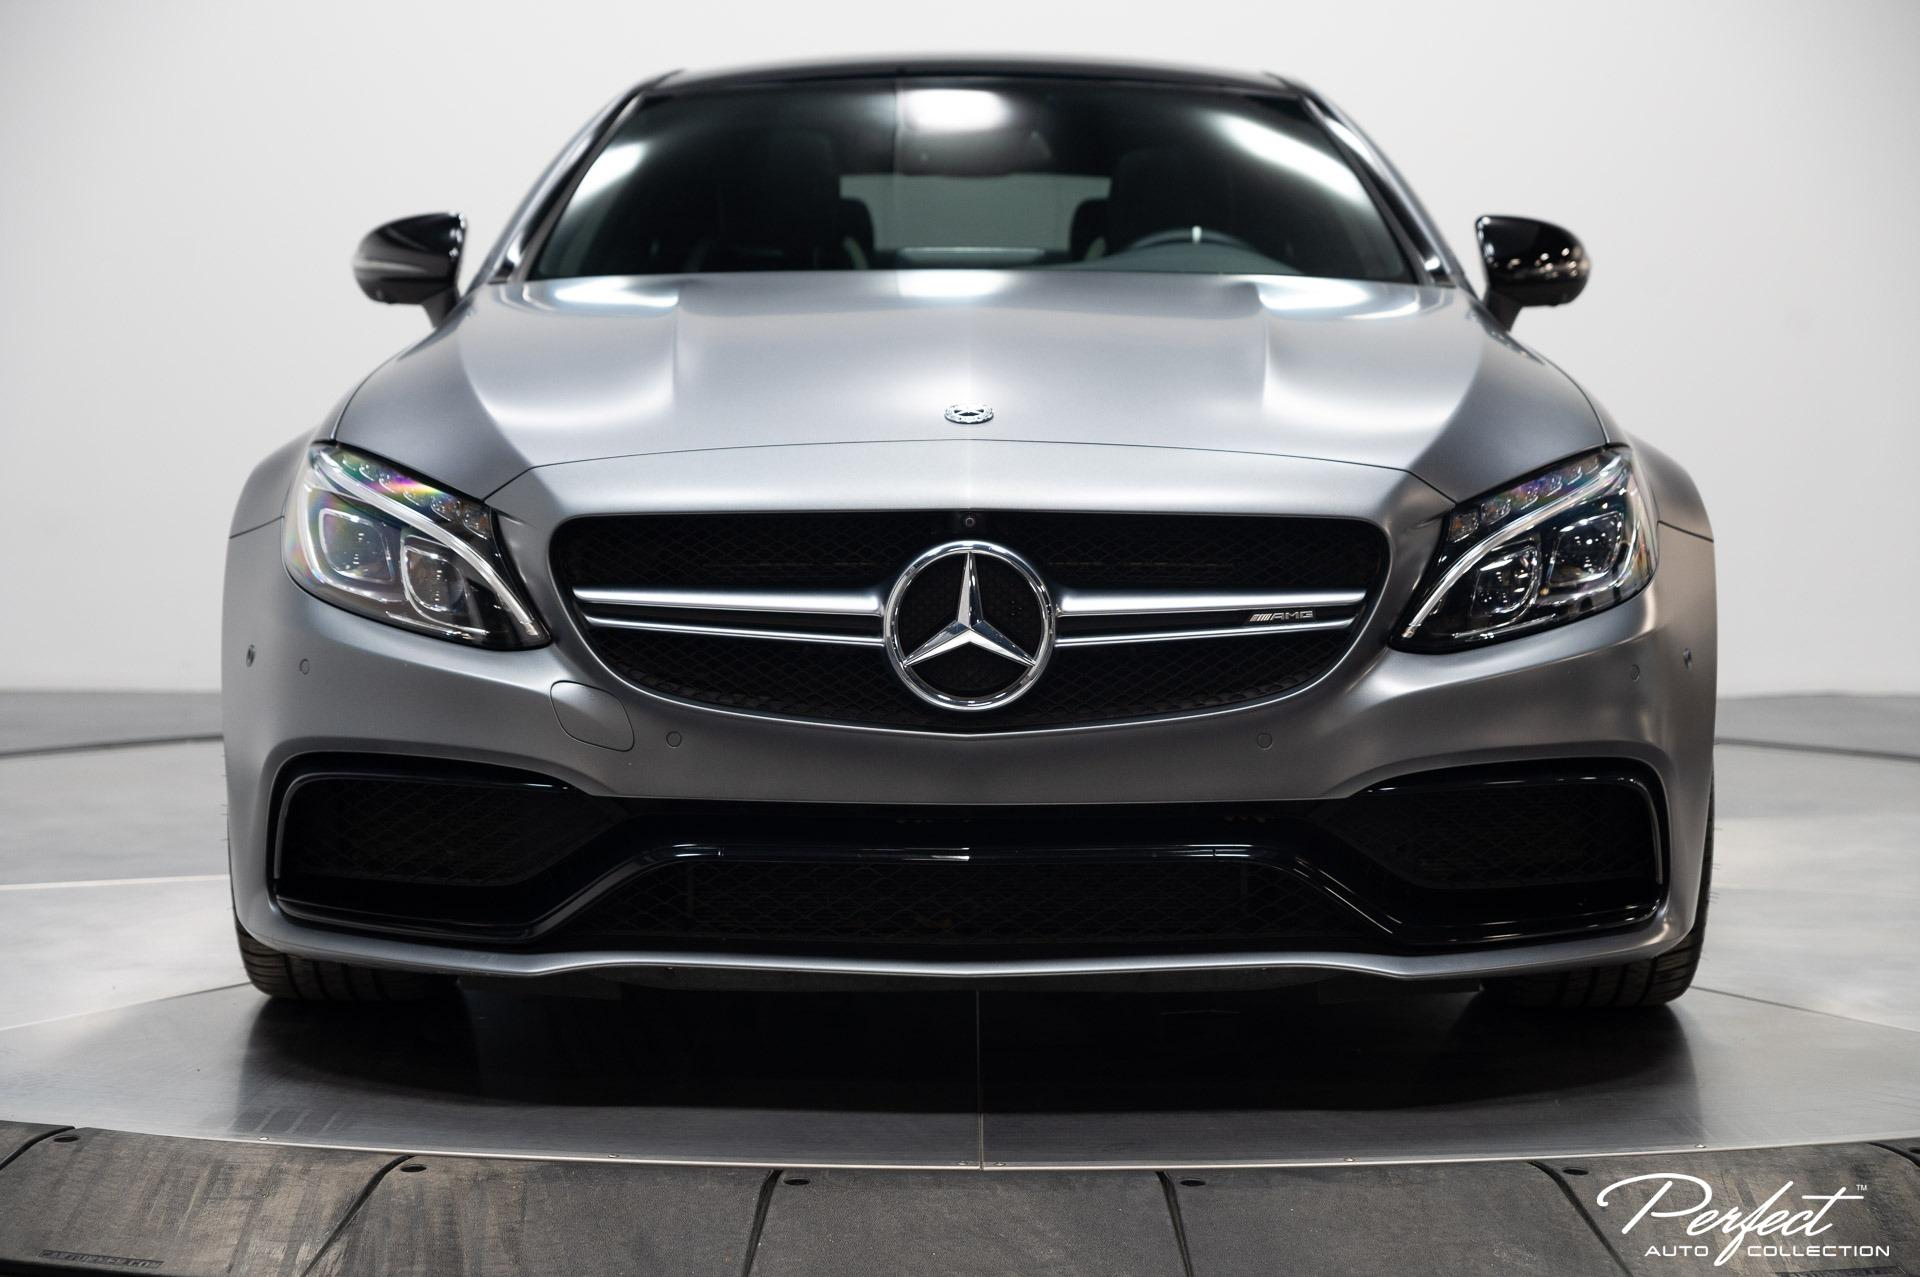 Used 2018 Mercedes-Benz C-Class AMG C 63 S for sale $63,995 at Perfect Auto Collection in Akron OH 44310 2